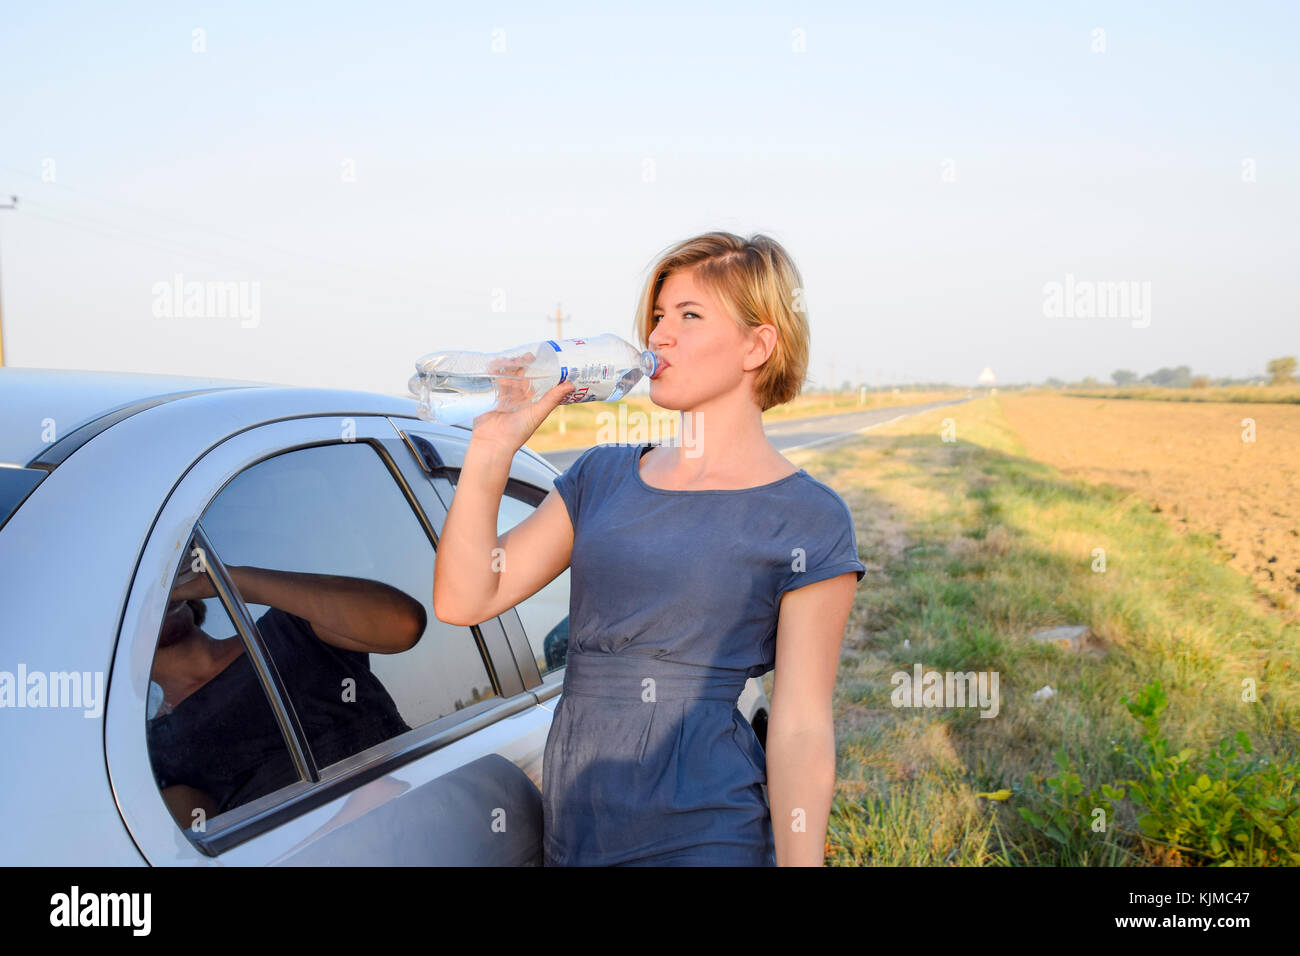 Slavyansk-on-Kuban, Russia - September 17, 2017: The girl quenches his thirst. Blonde drinks water from a plastic - Stock Image